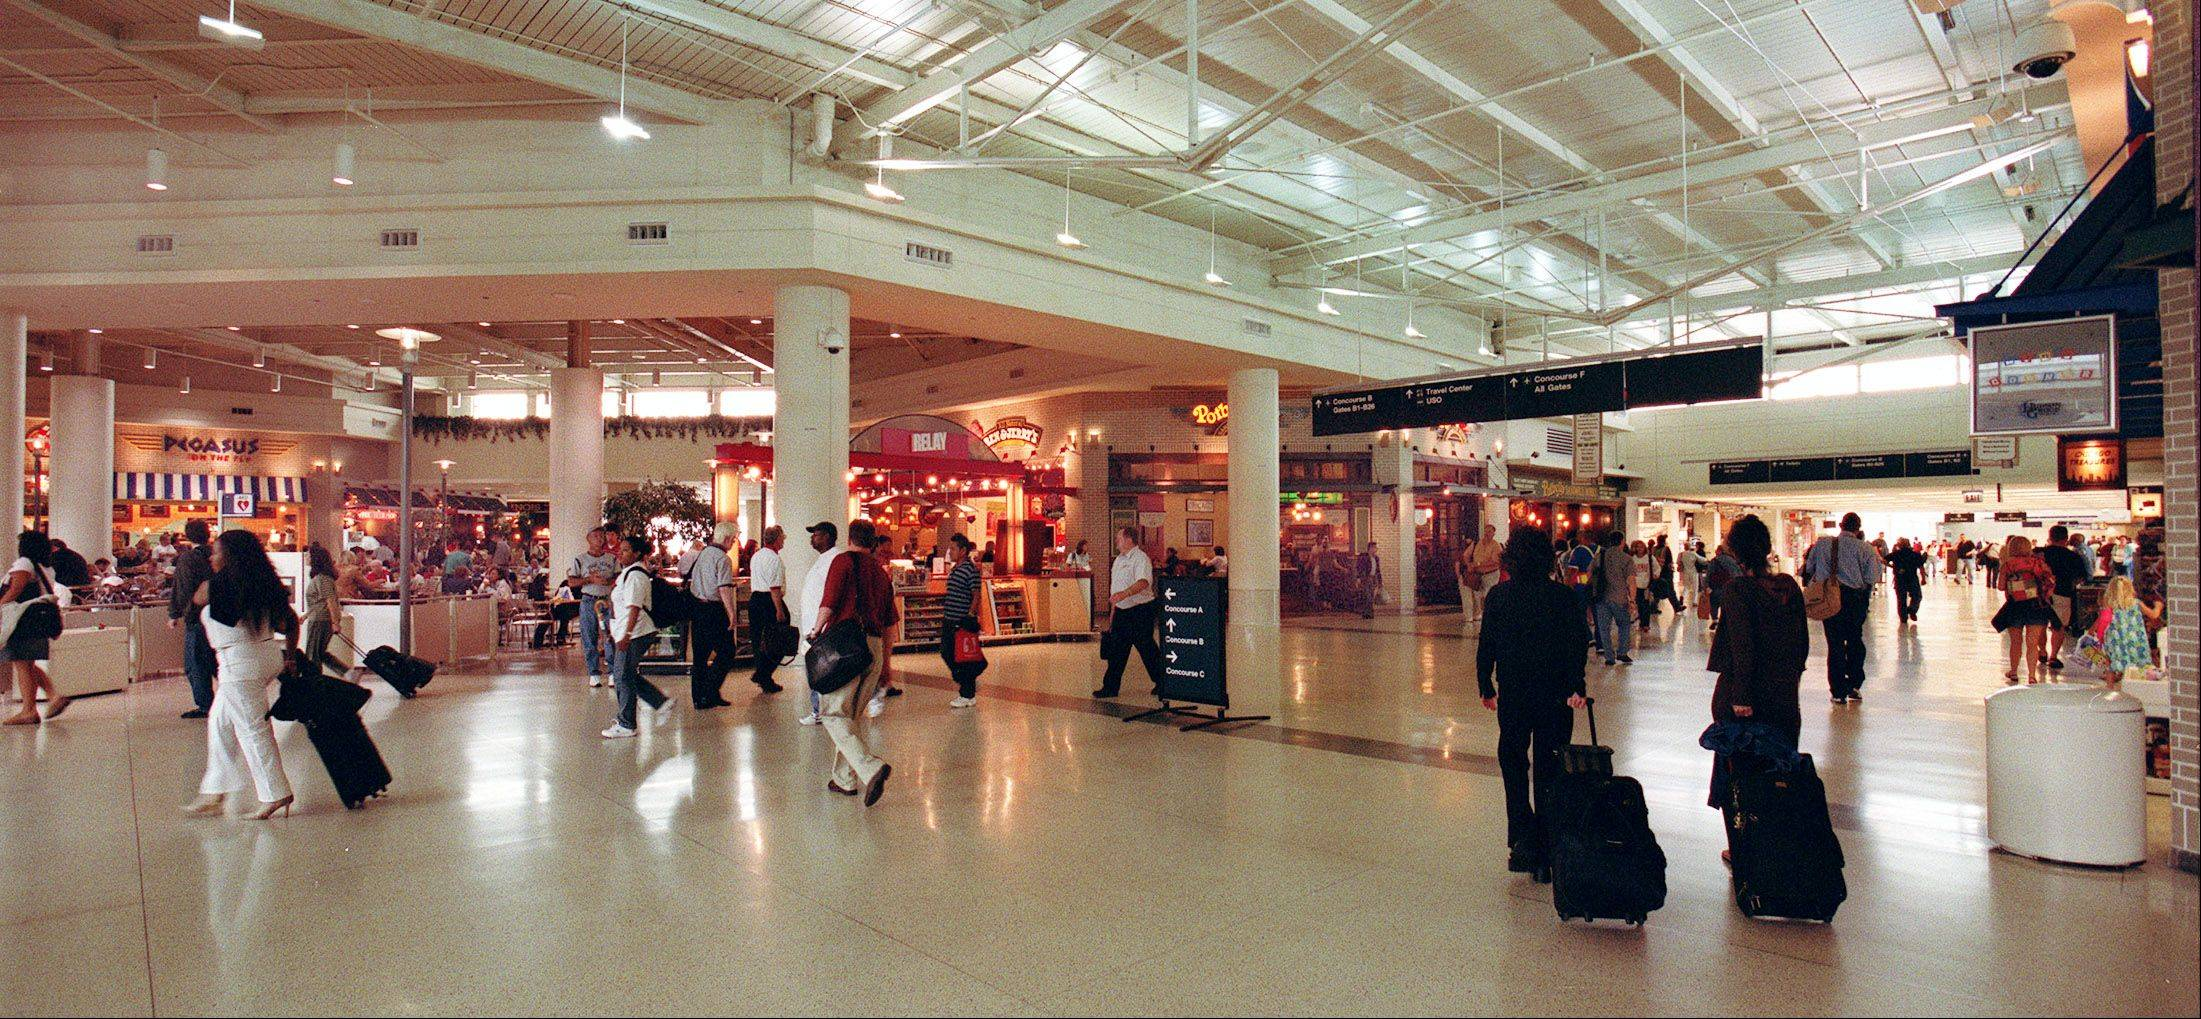 Daily Herald File Photo Improvements to Midway in the 2000s transformed the airport.